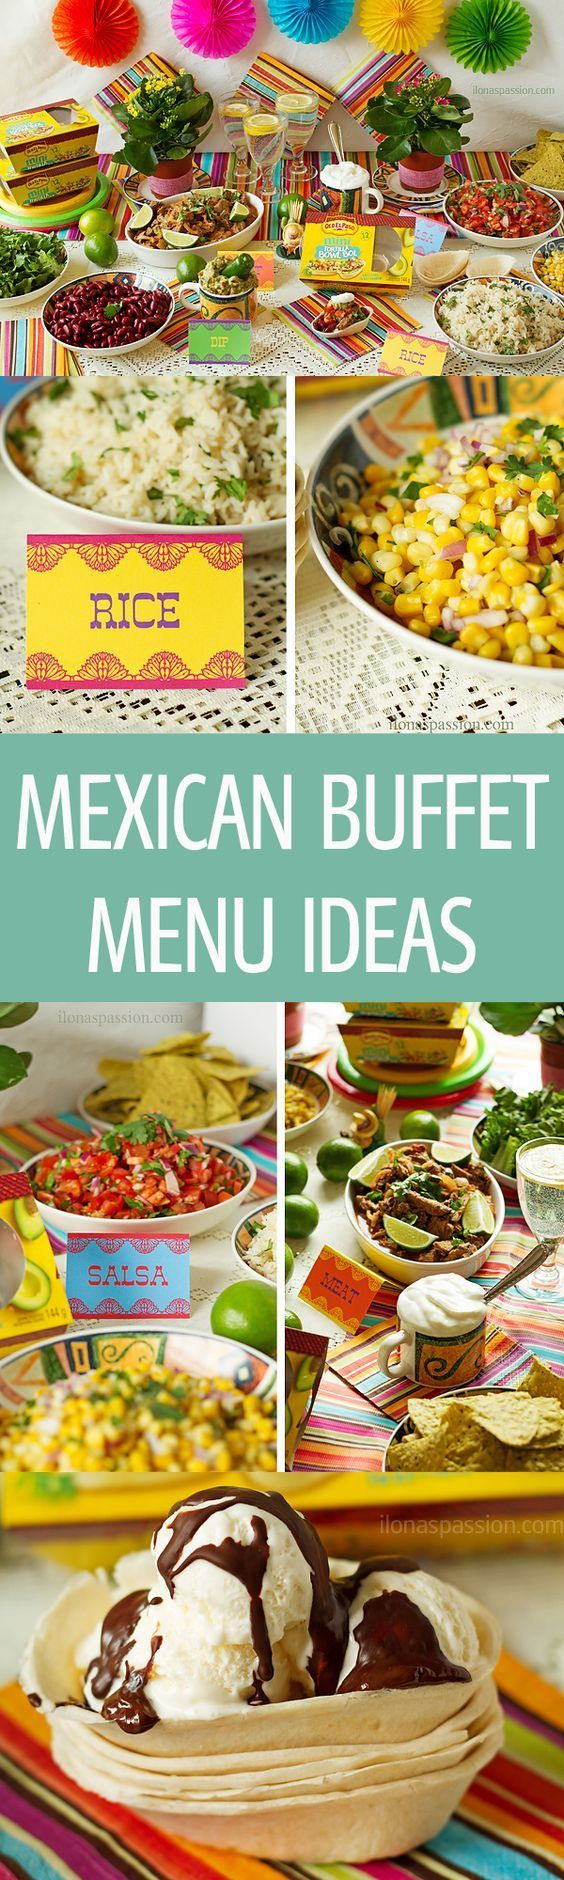 Mexican Buffet Menu Ideas - full Mexican buffet menu ideas with recipes like barbacoa, lime cilantro rice, avocado dip, beans, tortilla bowls, corn and homemade salsa. Free Mexican printable table tents included! by http://ilonaspassion.com I /ilonaspassion/ #CreateYourBowl #ad